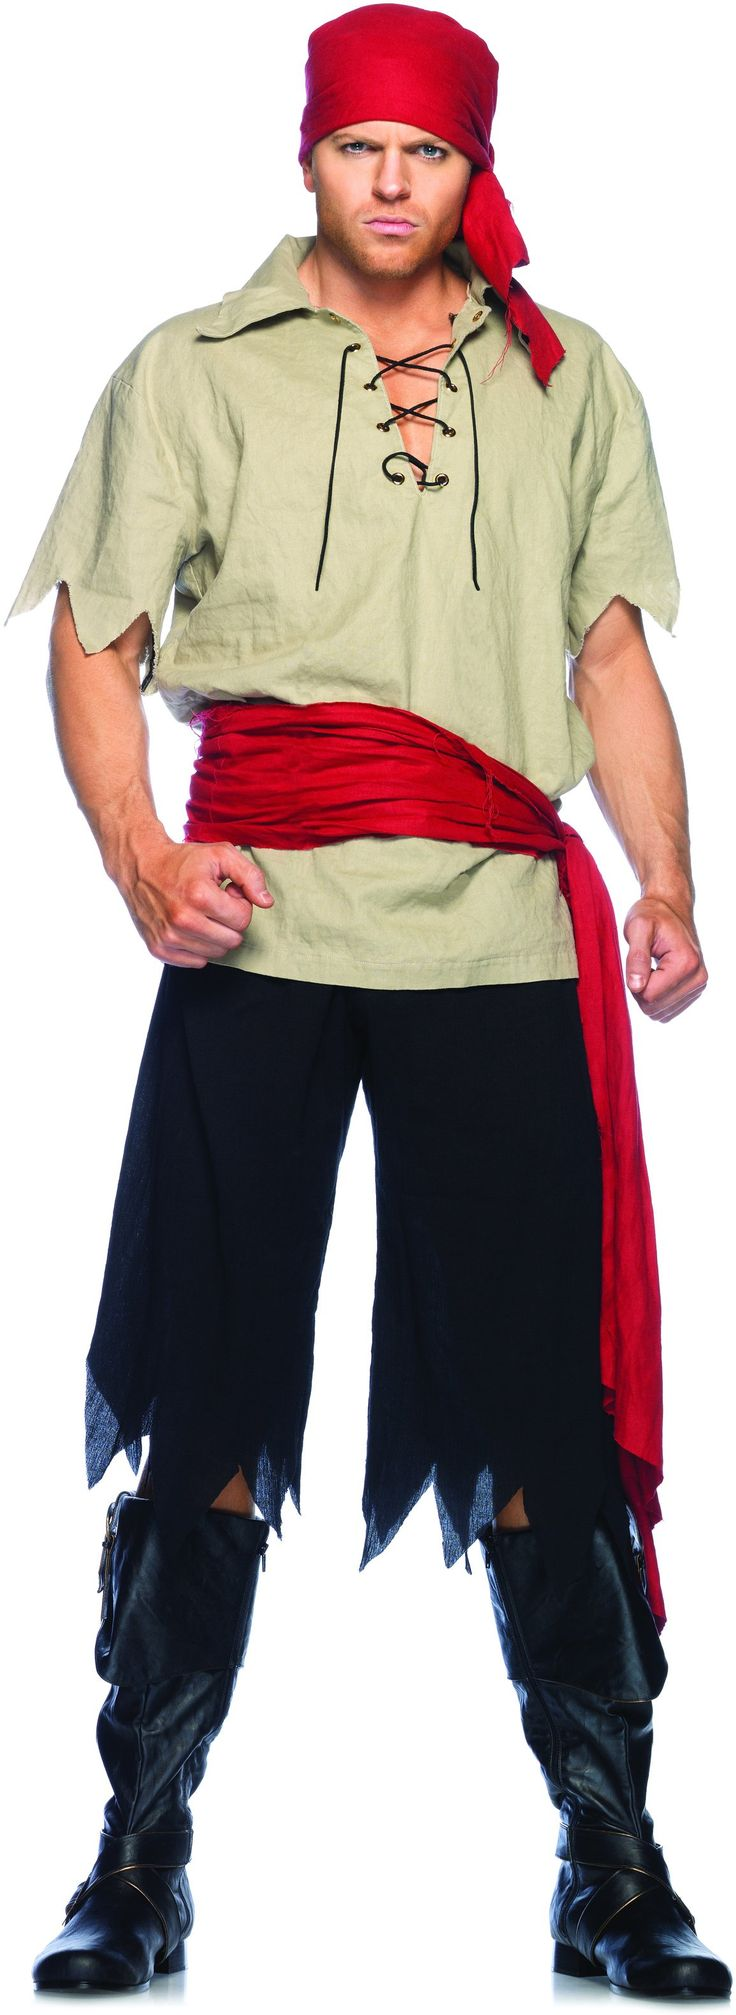 Christmas fancy dress ideas diy - Cut Throat Pirate Adult Costume From Buycostumes Com